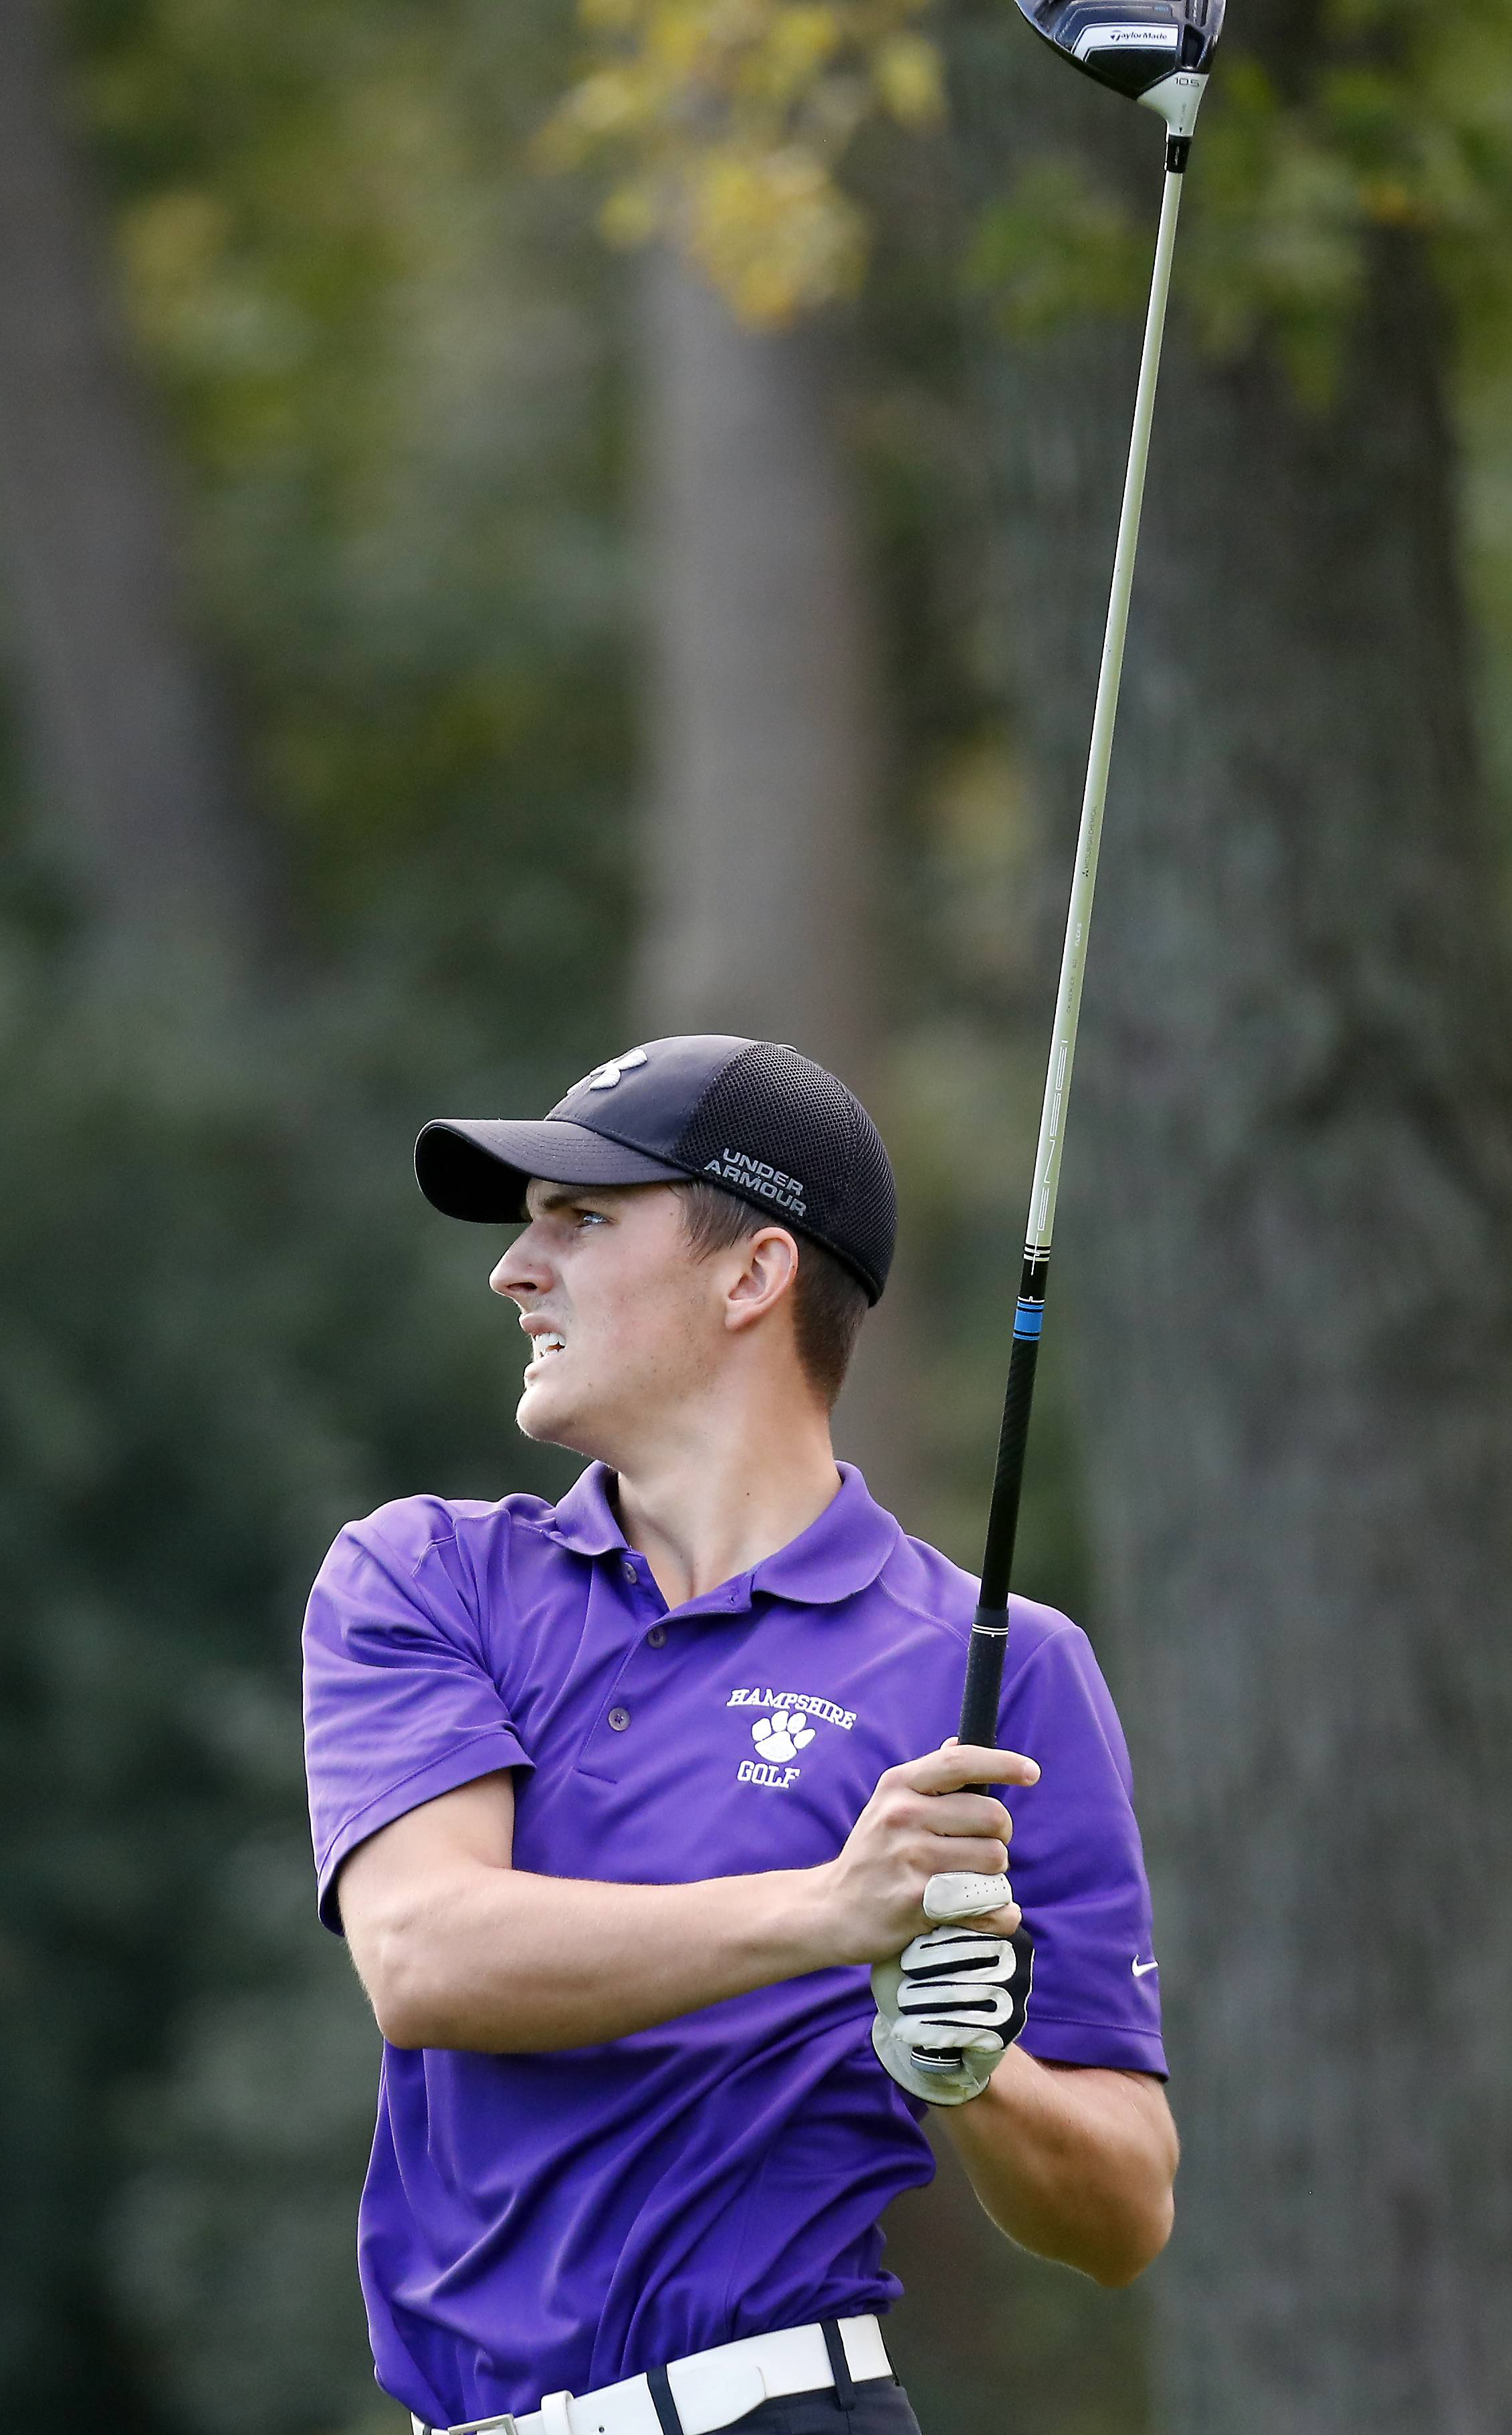 Hampshire's Craig Bracke Tuesday during boys sectional golf at Palatine Hills